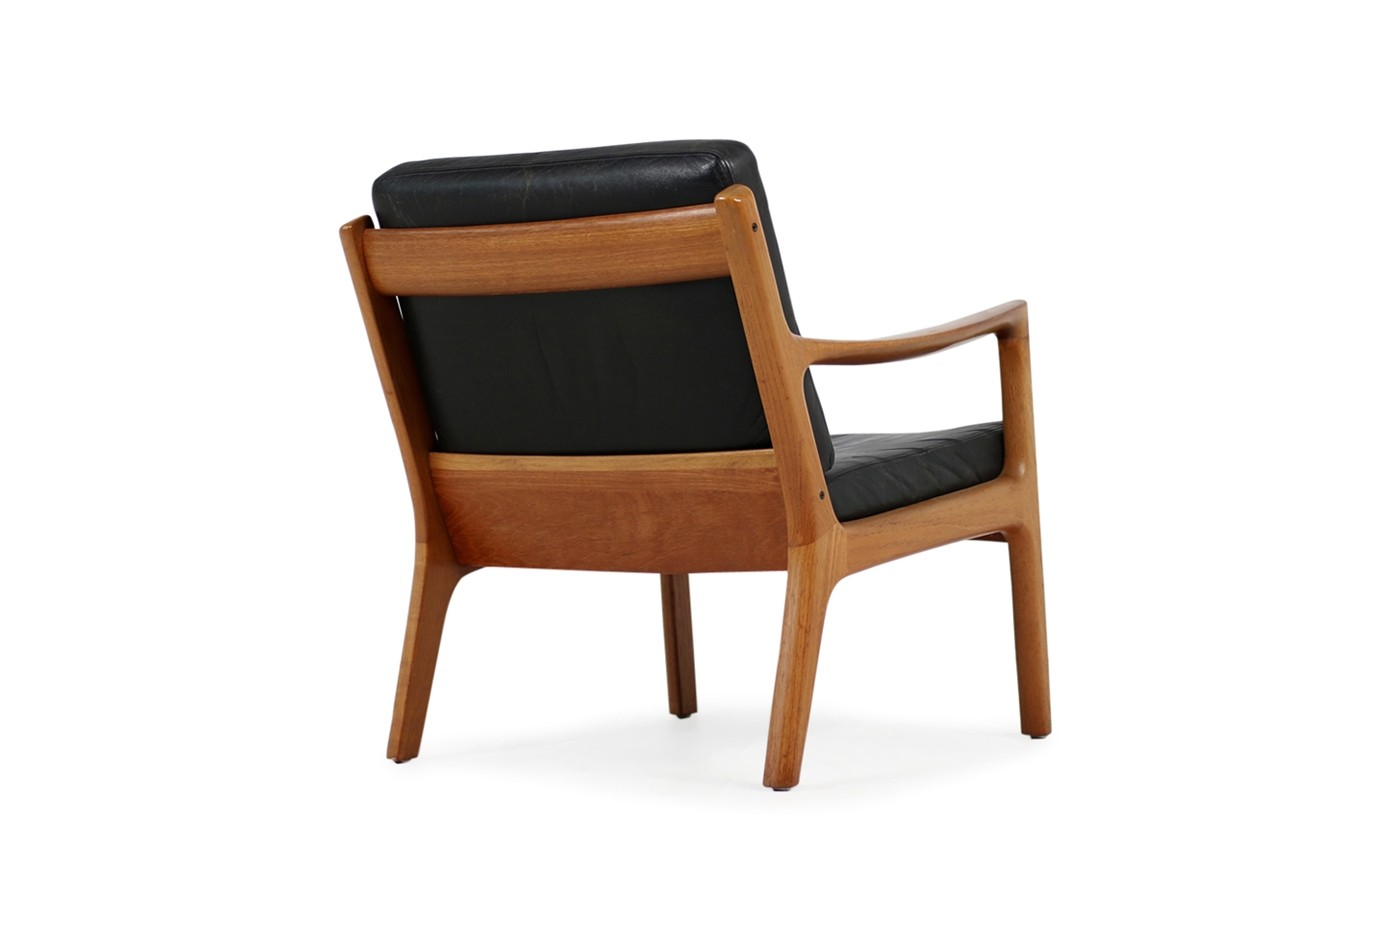 Sessel modern  1960s Danish Modern Ole Wanscher Easy Chair Teak & Black Leather No. 2